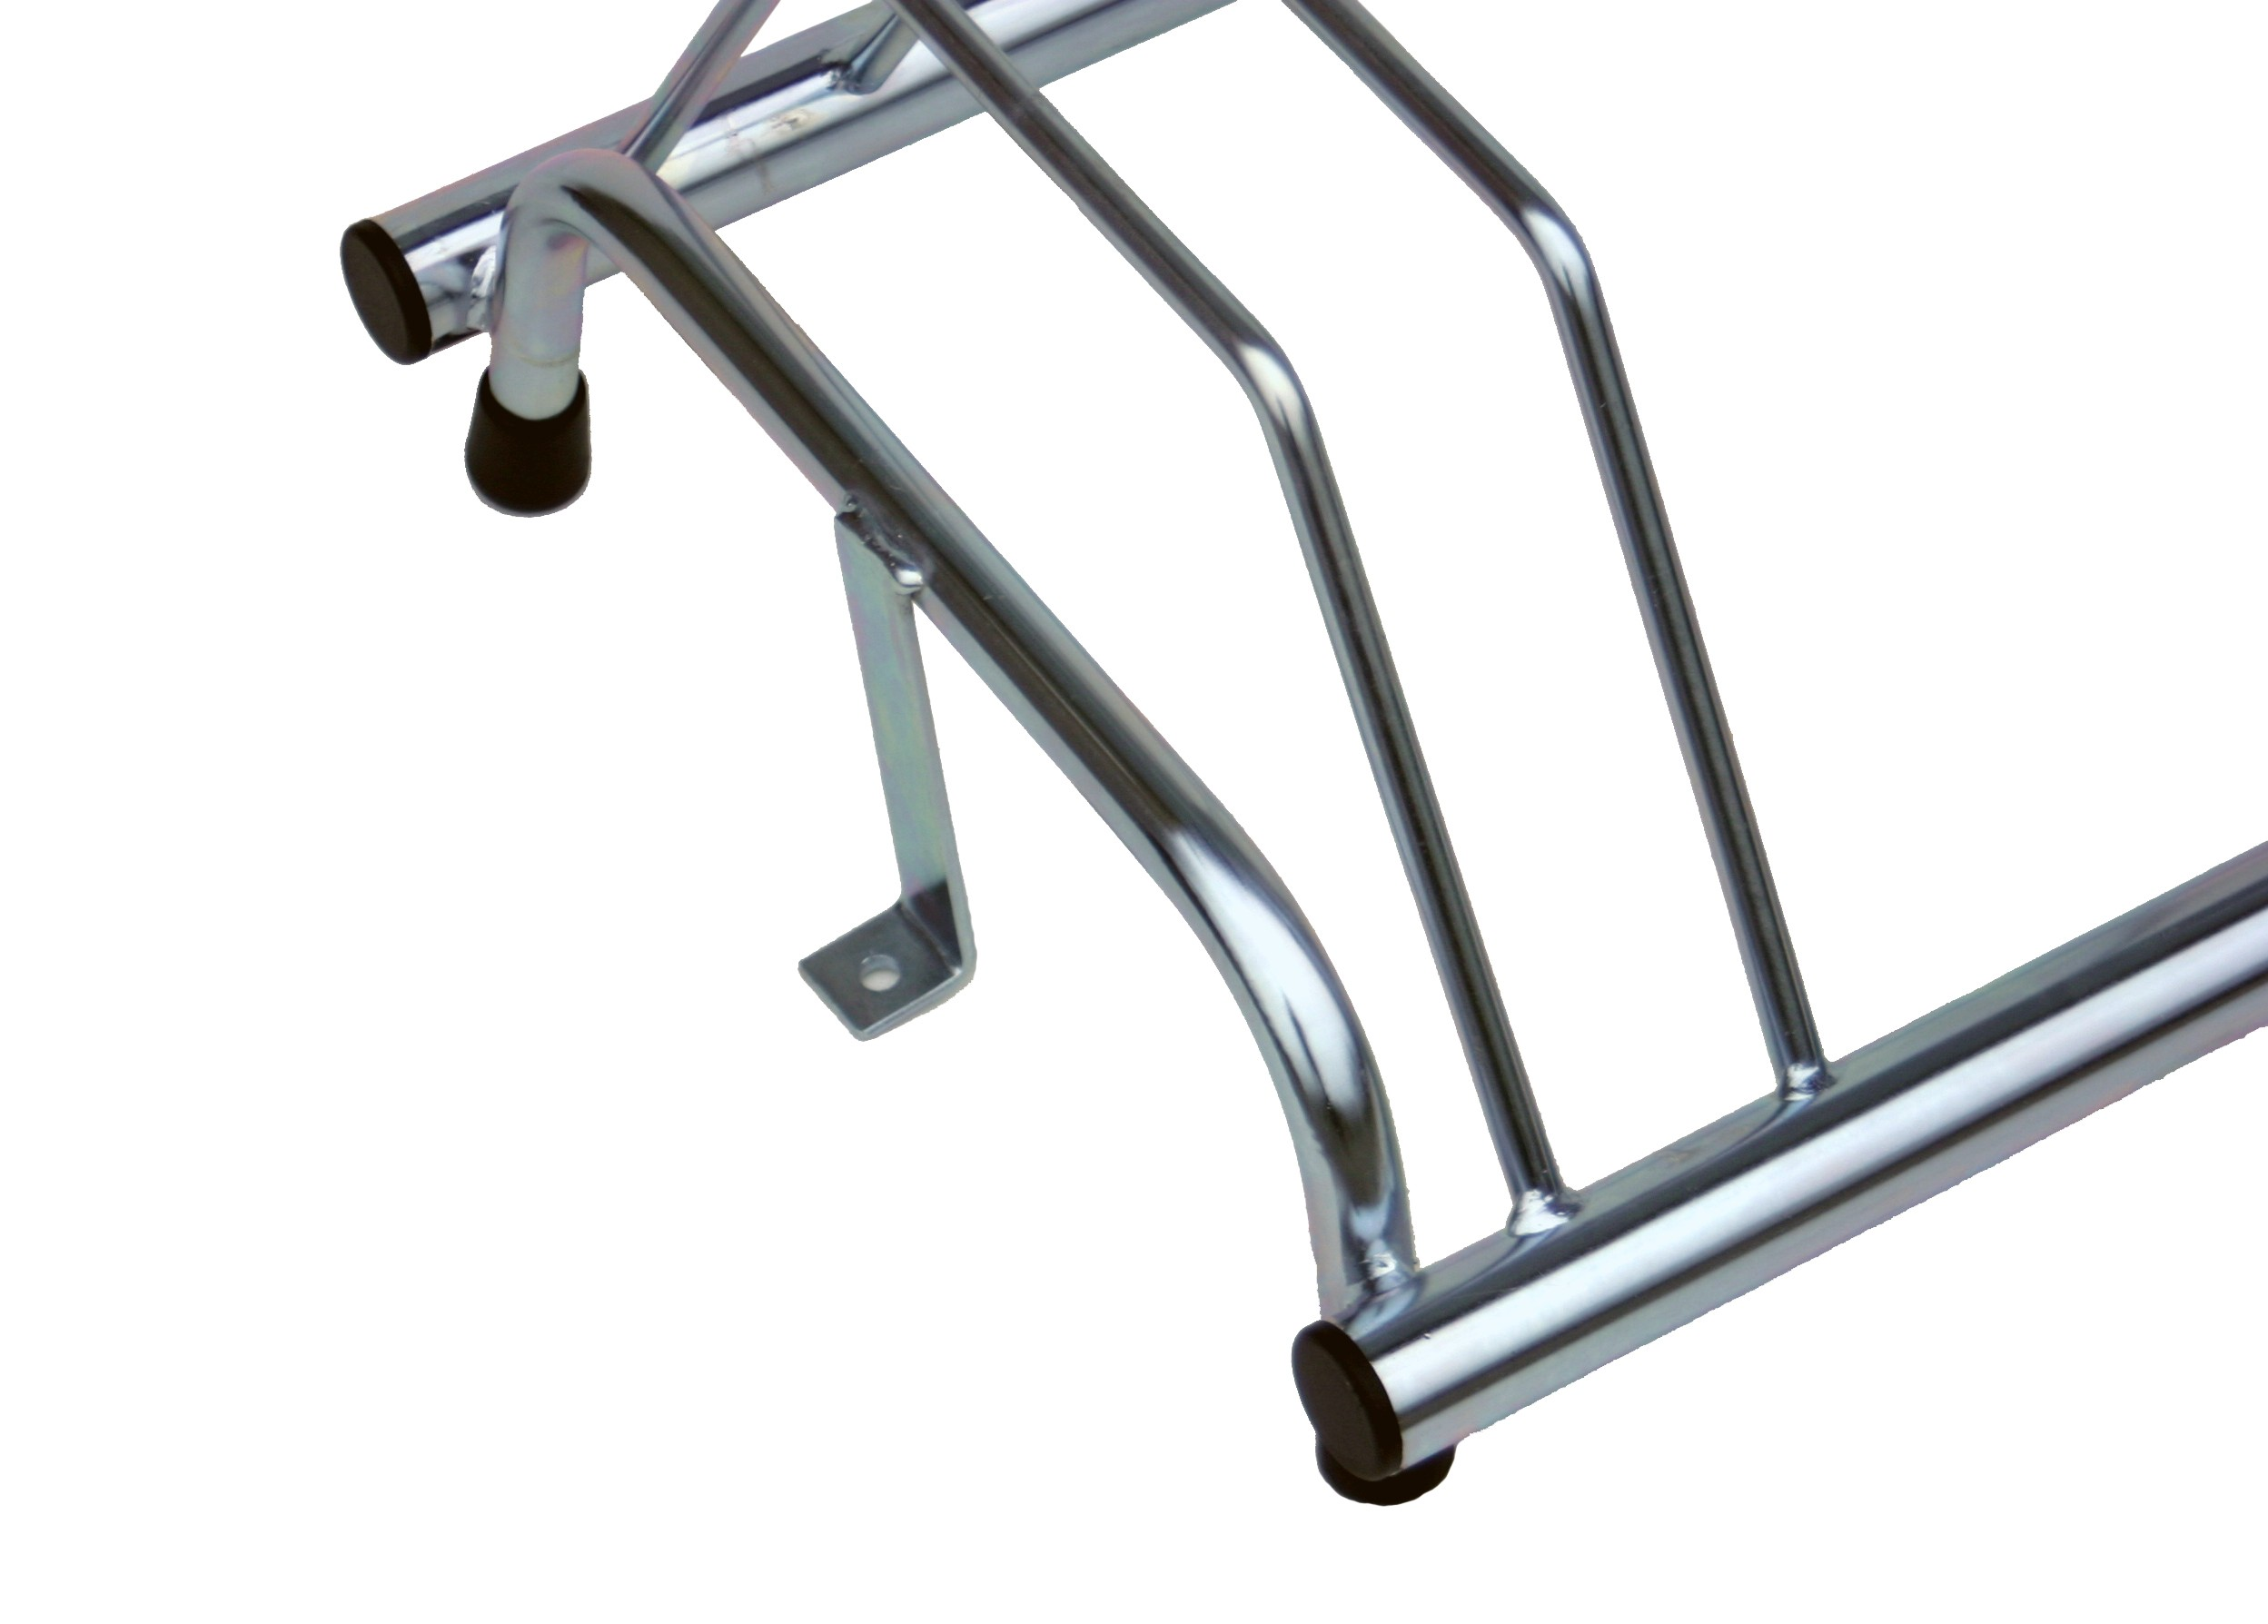 5 Section cycle rack with feet